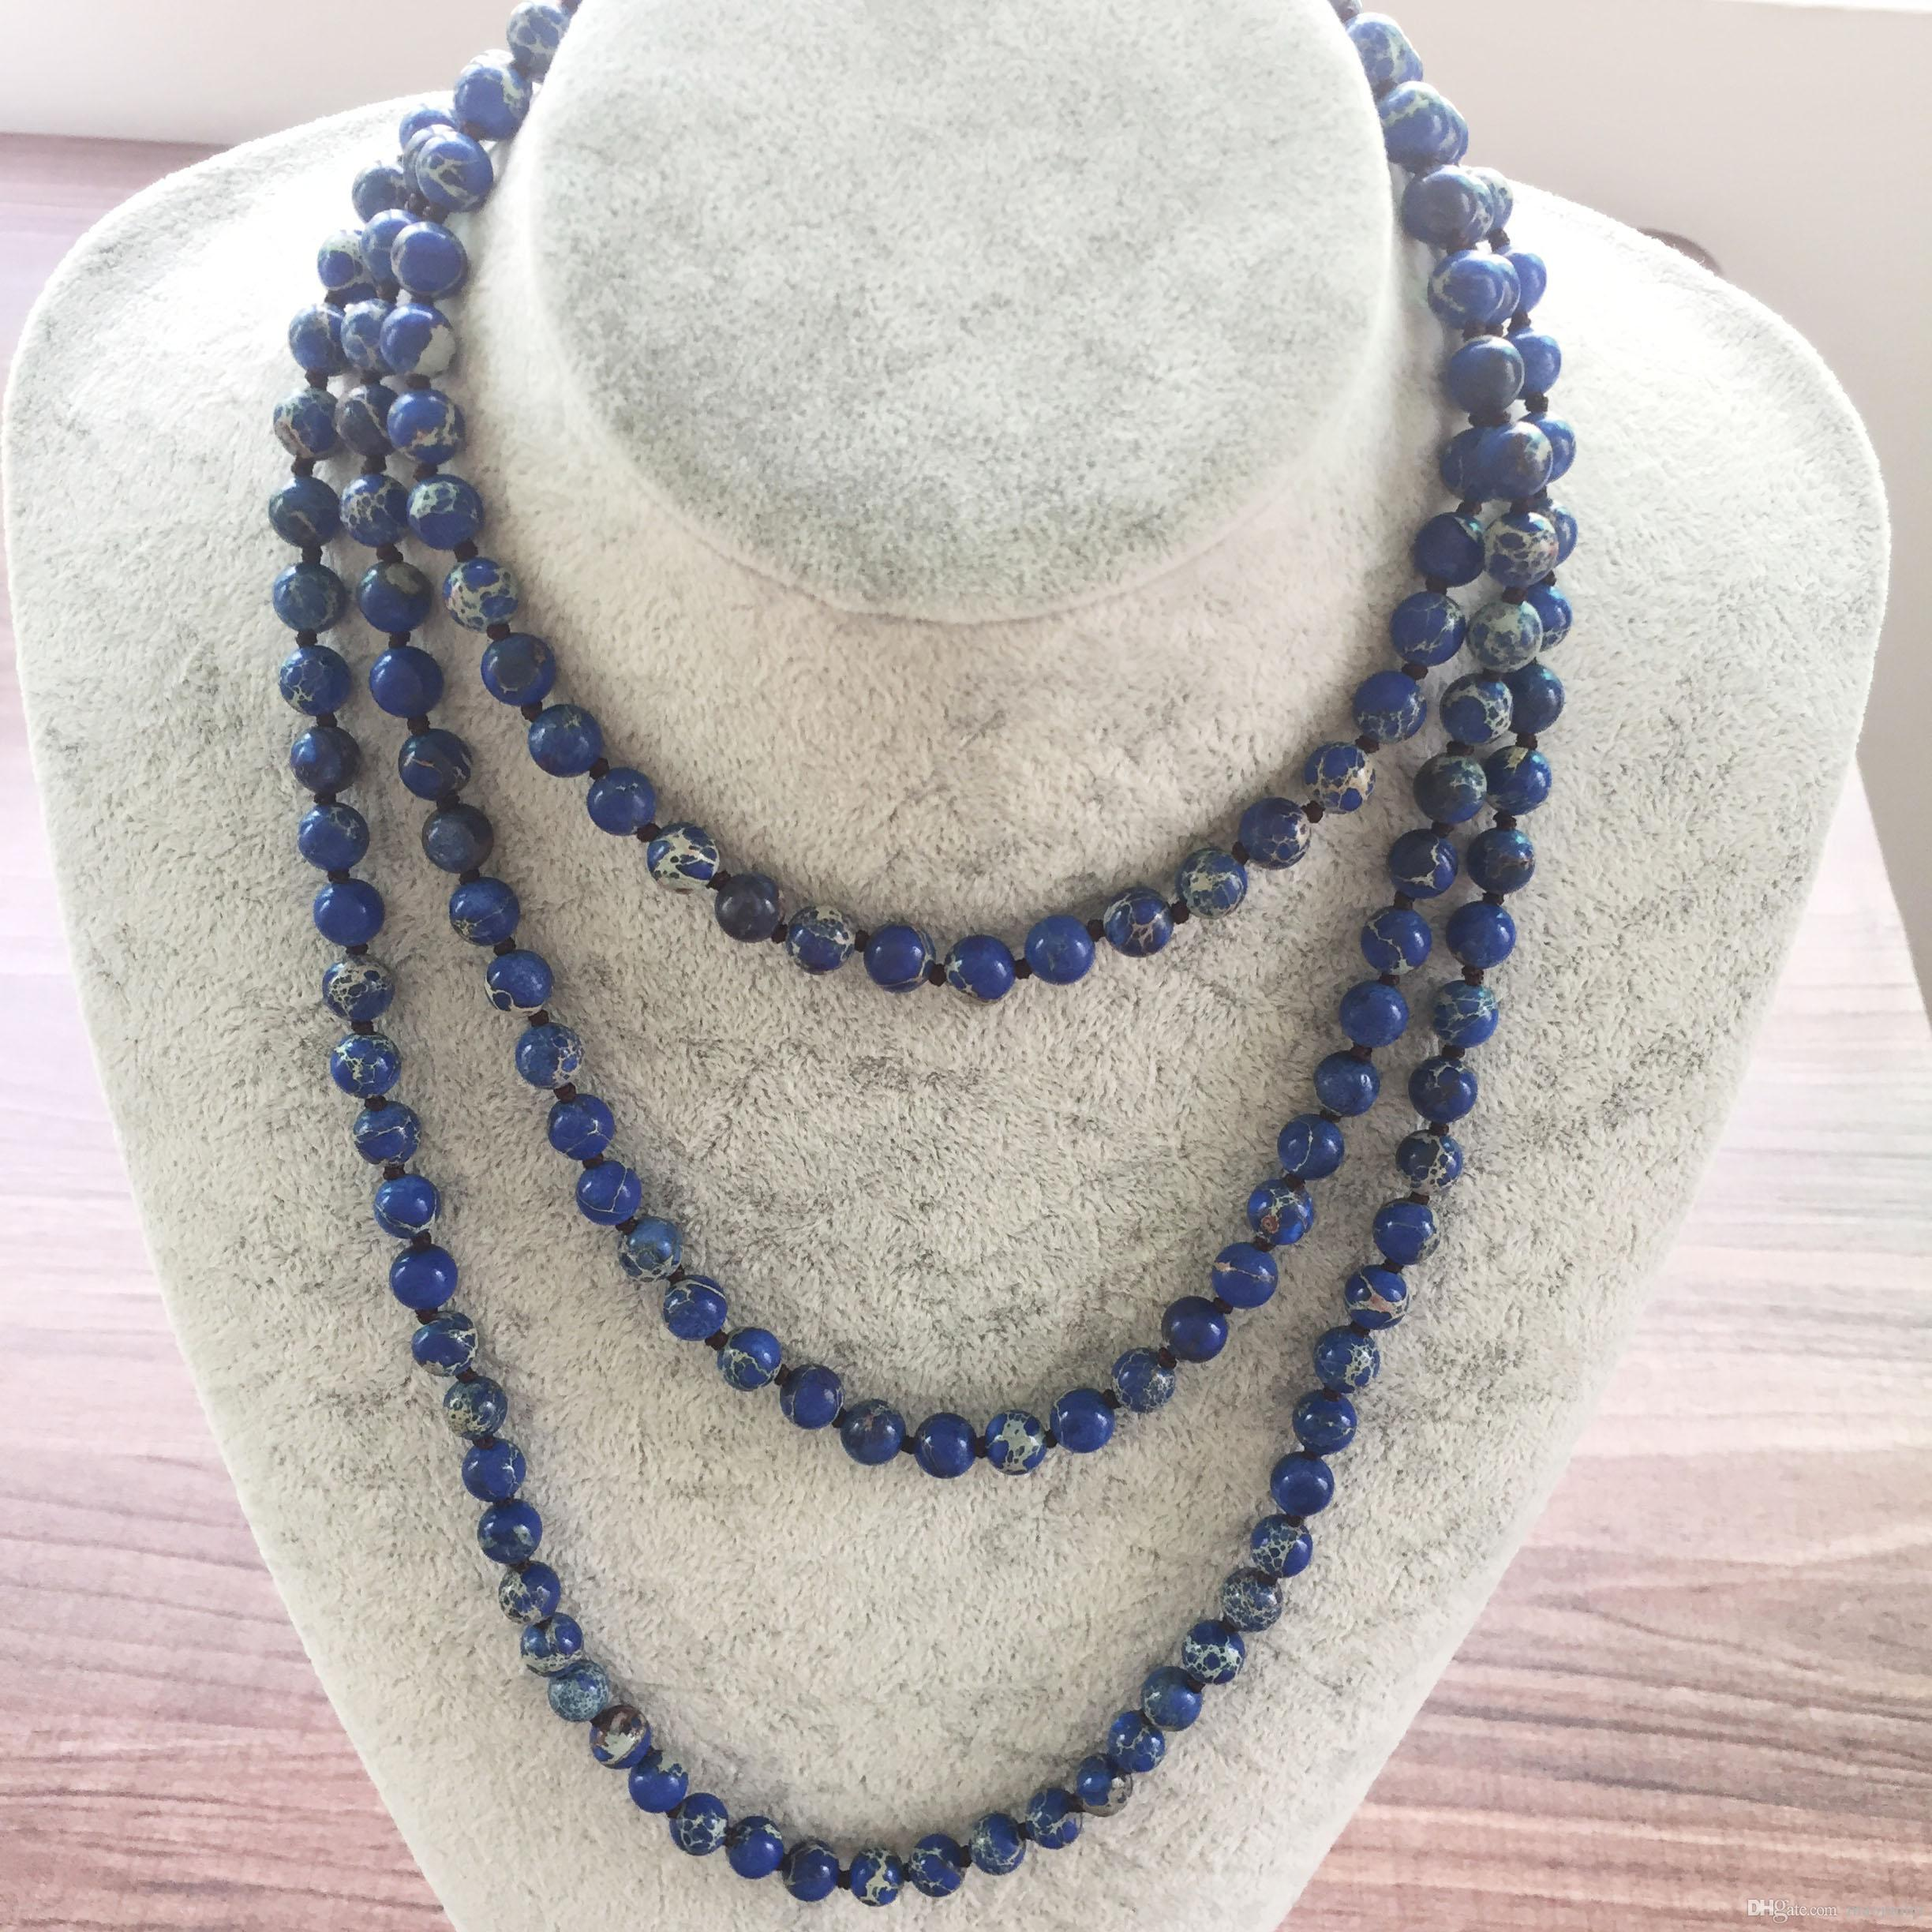 42inch Long Necklaces Hand Knotted Nature Stone 8MM Blue Regalite Necklace Endless Infinity Beaded Yoga Mala Beads